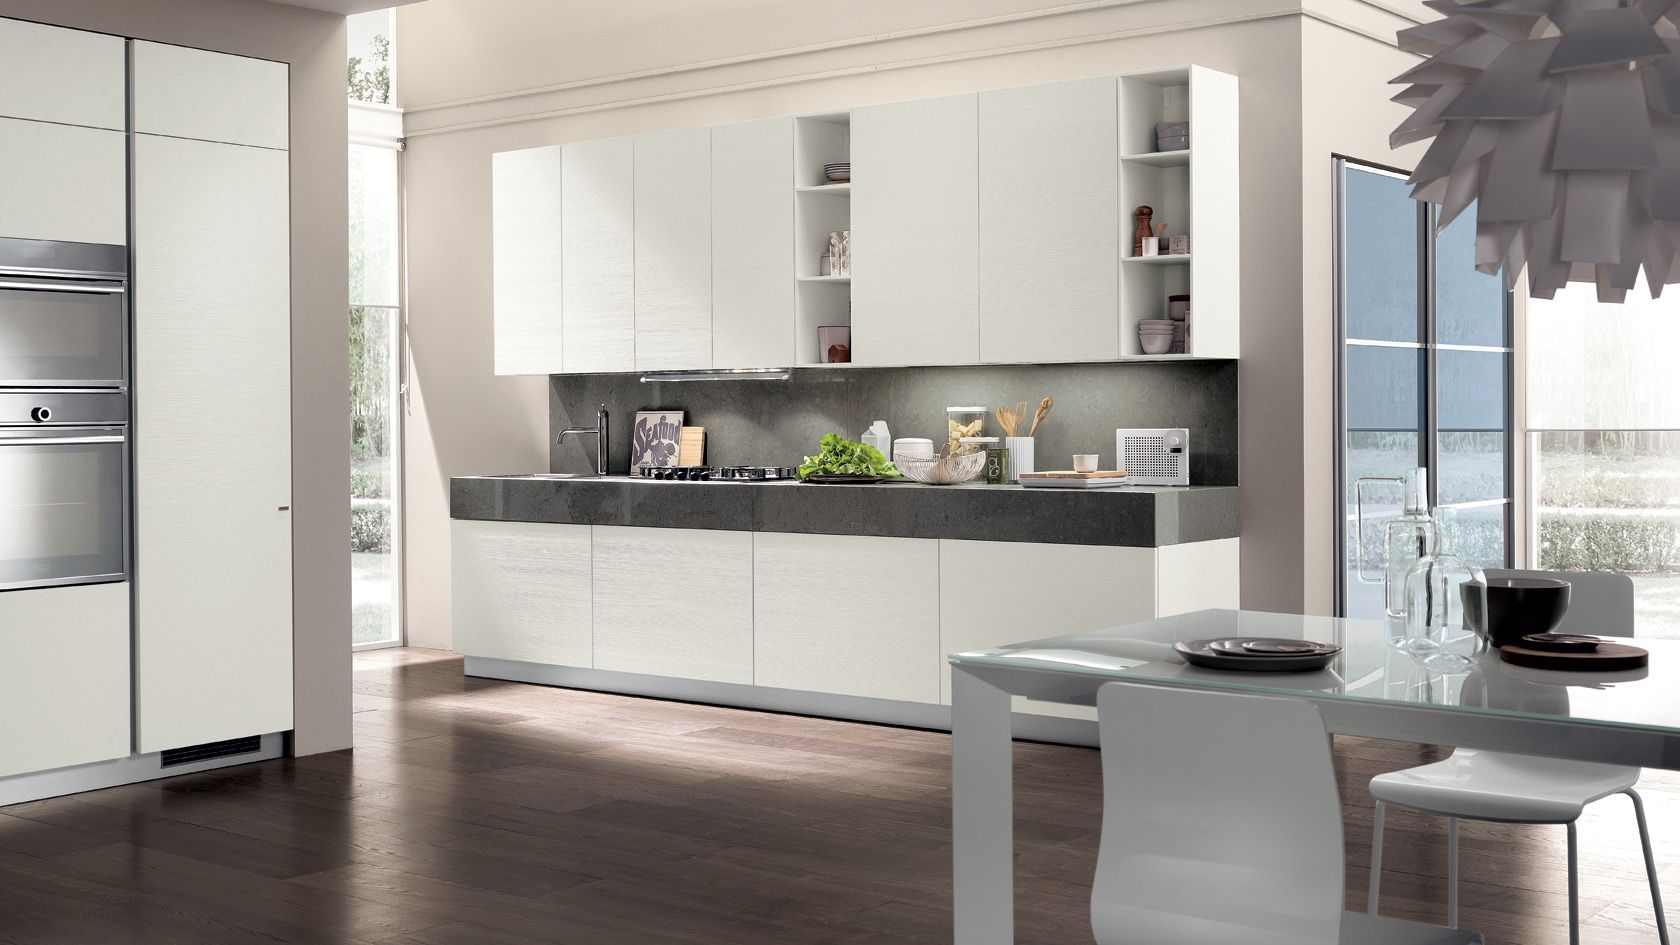 scavolini kitchen liberamente - close, we like the open shelves, Hause ideen